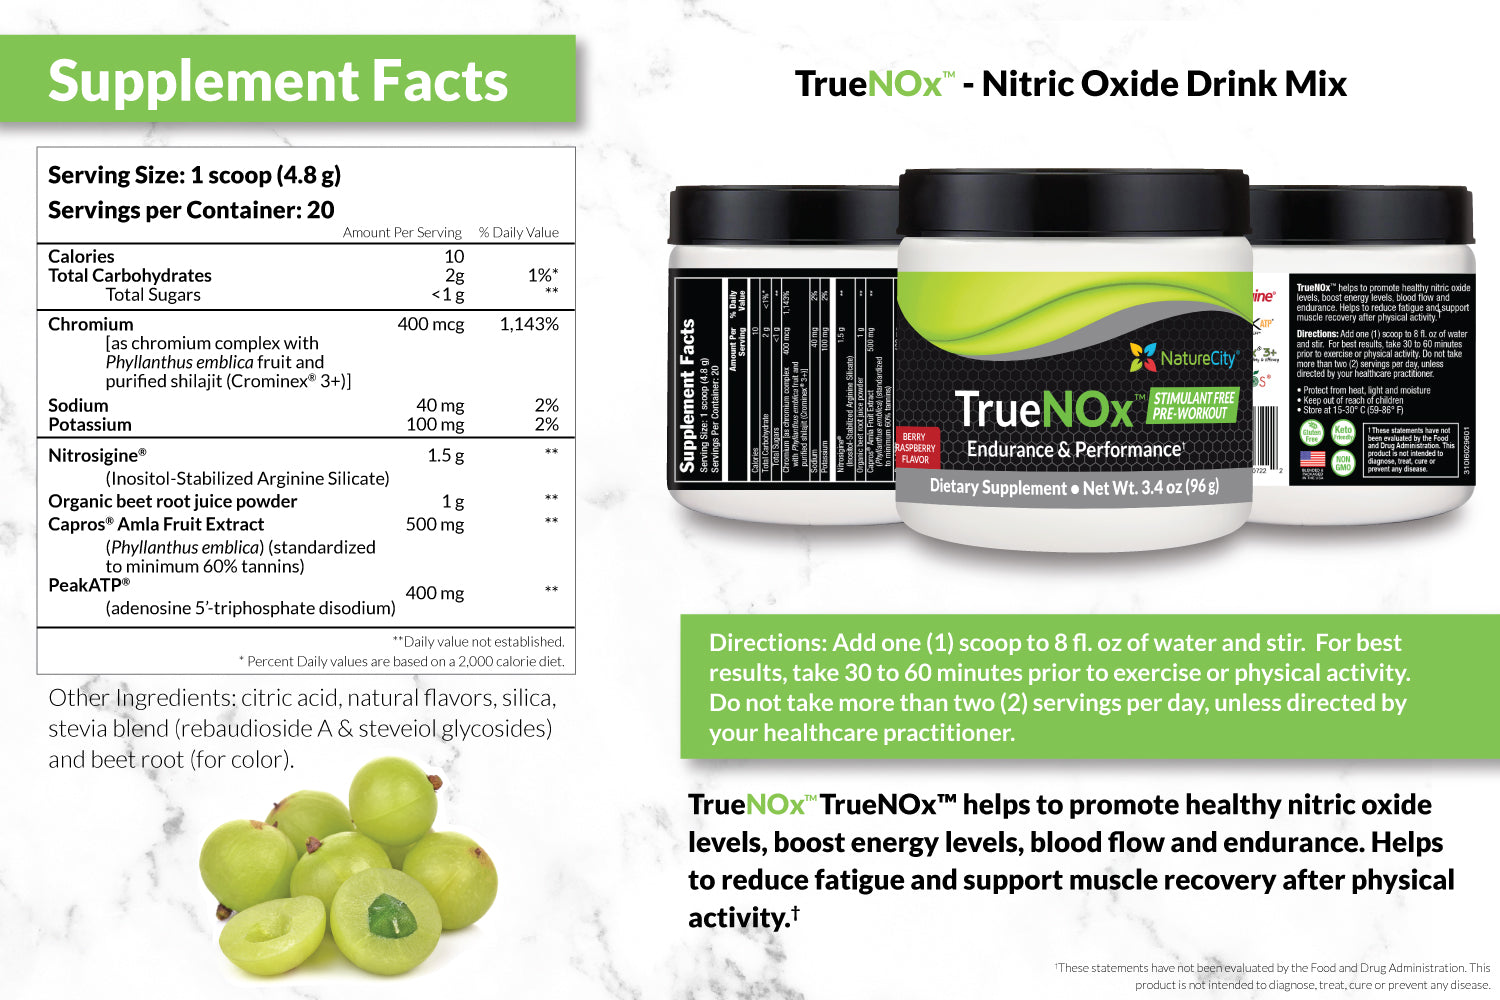 TrueNOx Nitric Oxide Booster Supplement Facts and Suggested Use